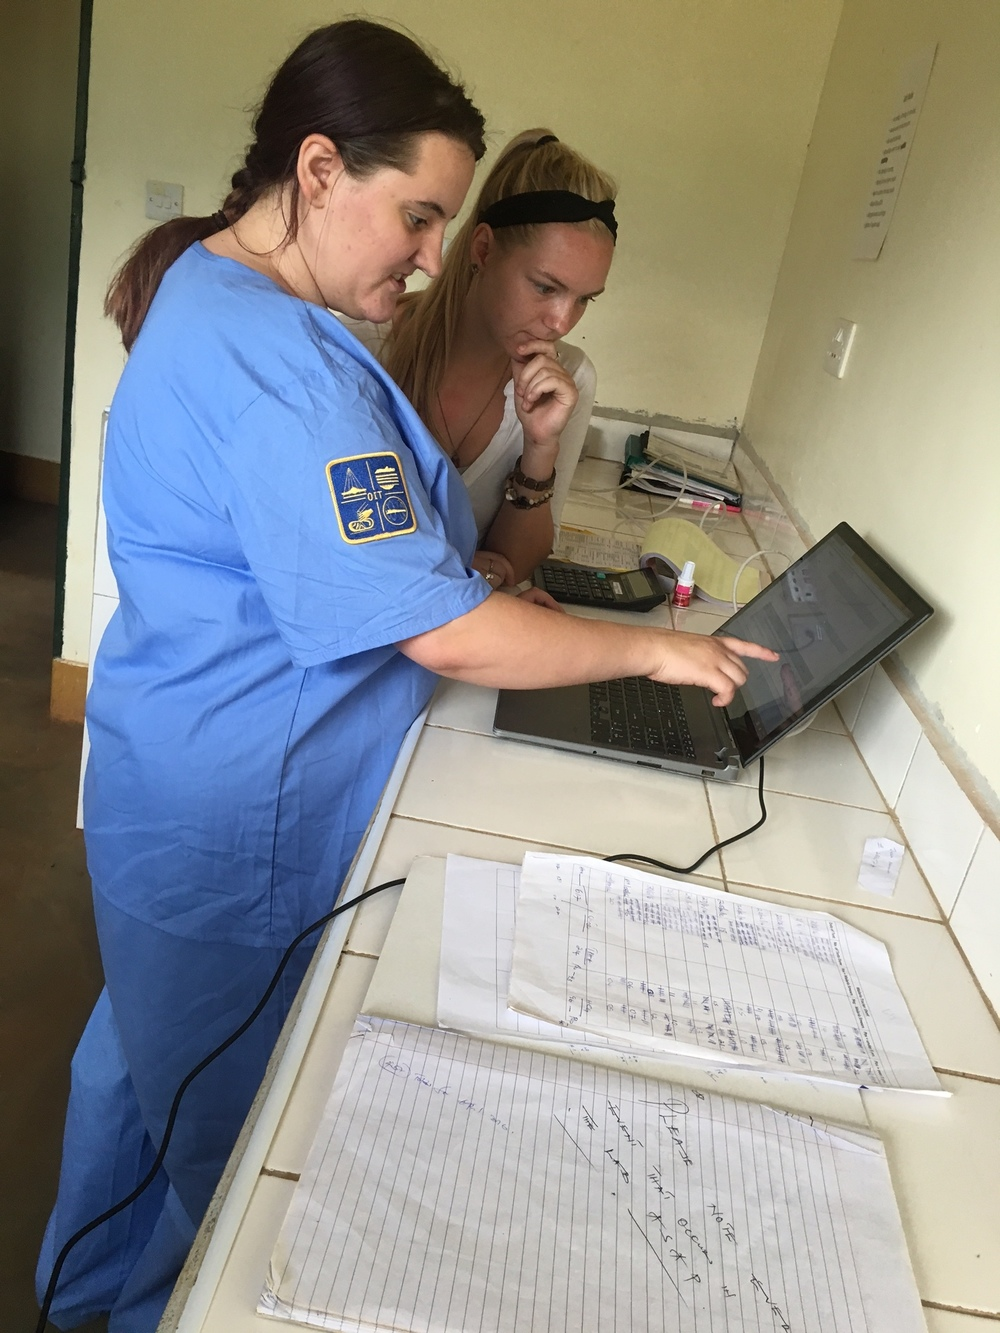 SIHF Uganda  Fellows work to improve data collection both at the clinic and during community outreach efforts.